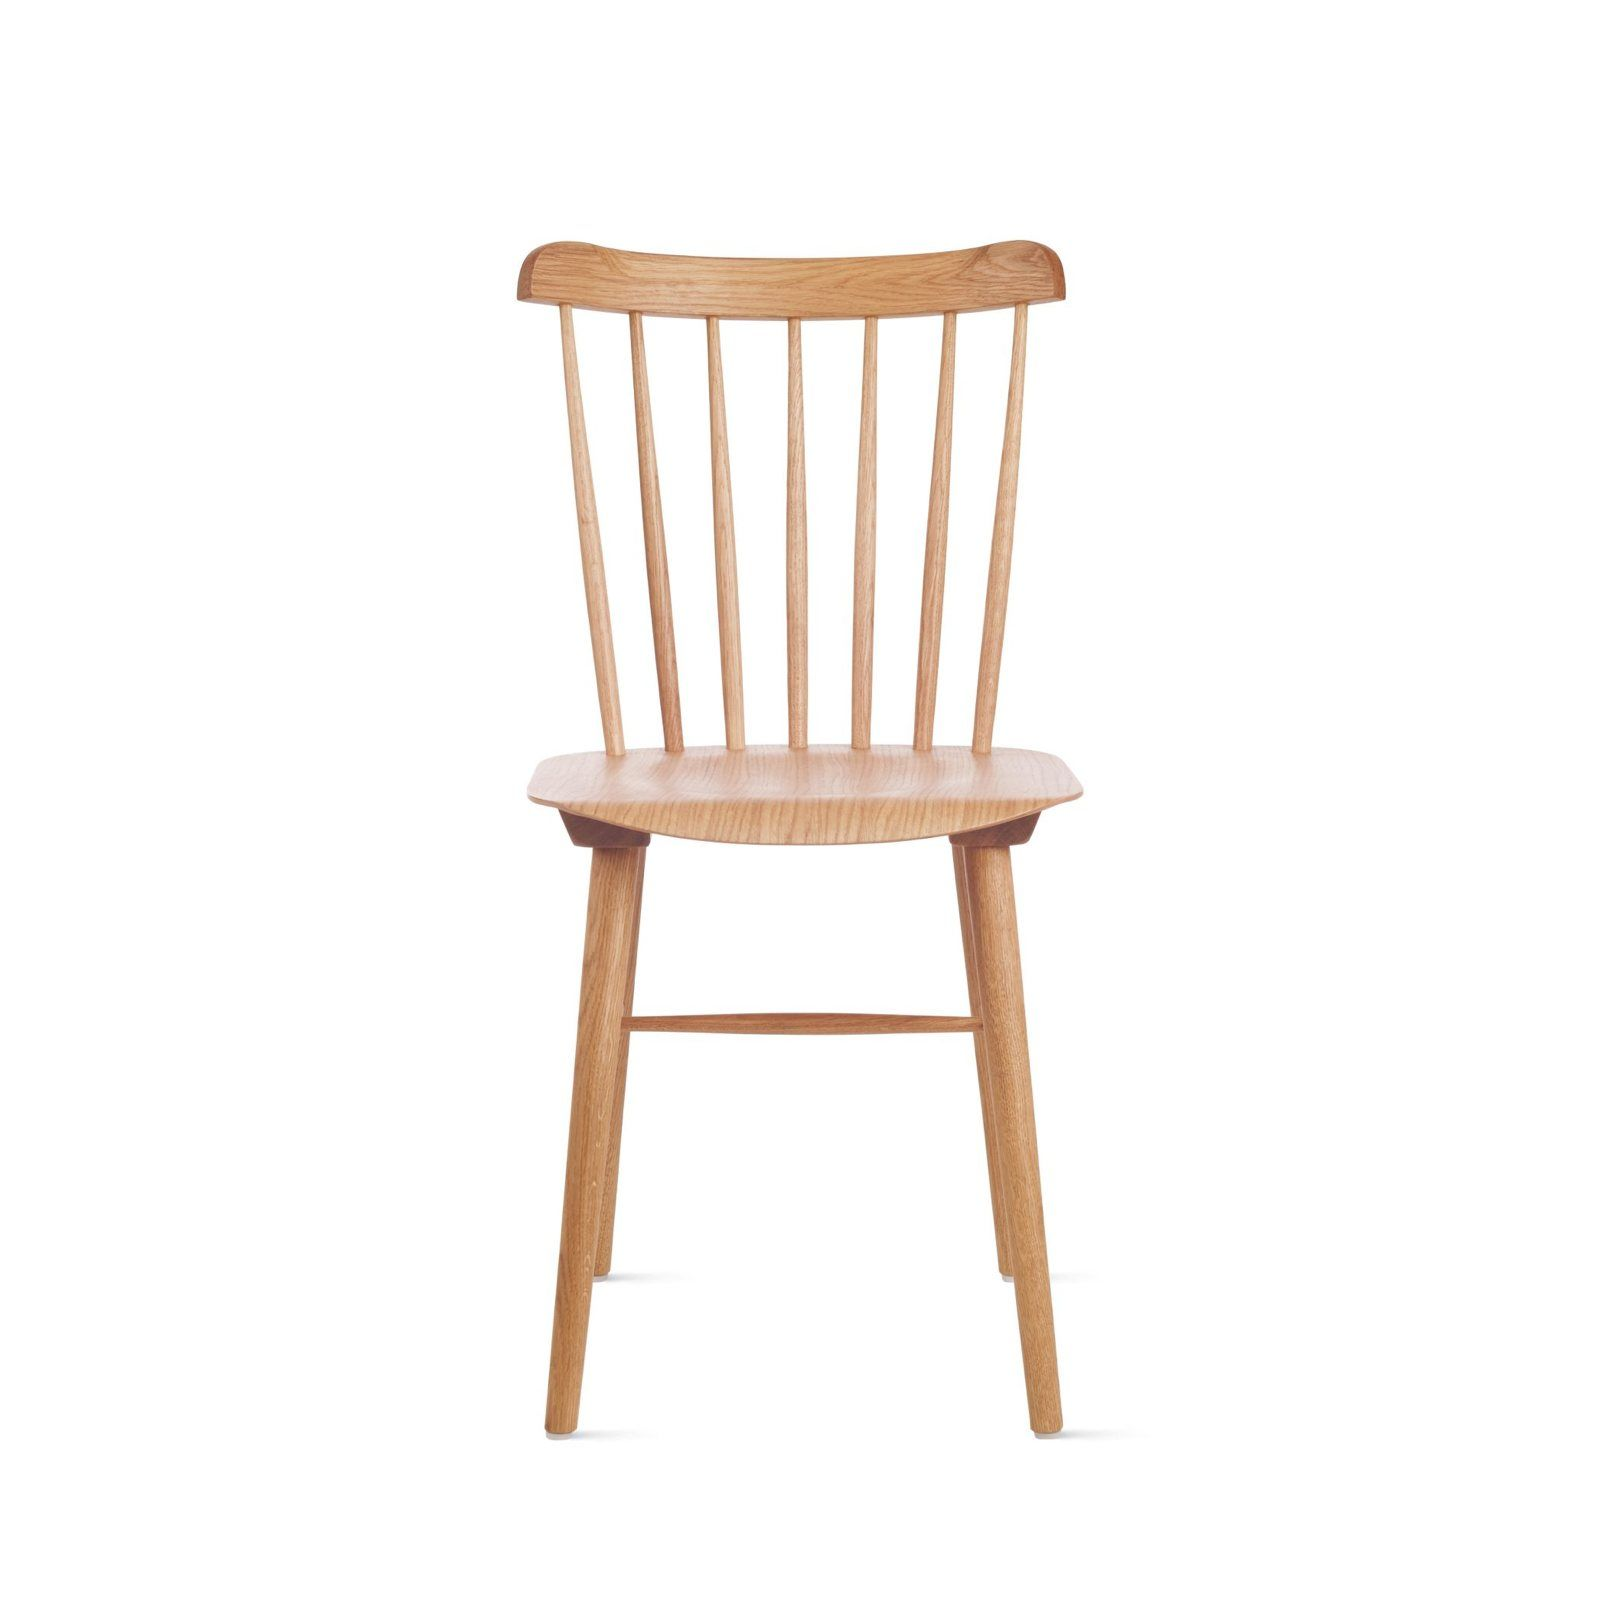 Chair Ironica Salt Chair By Ton Up Interiors Wooden Dining Chairs Scandinavian Dining Chairs Chair Design Wooden